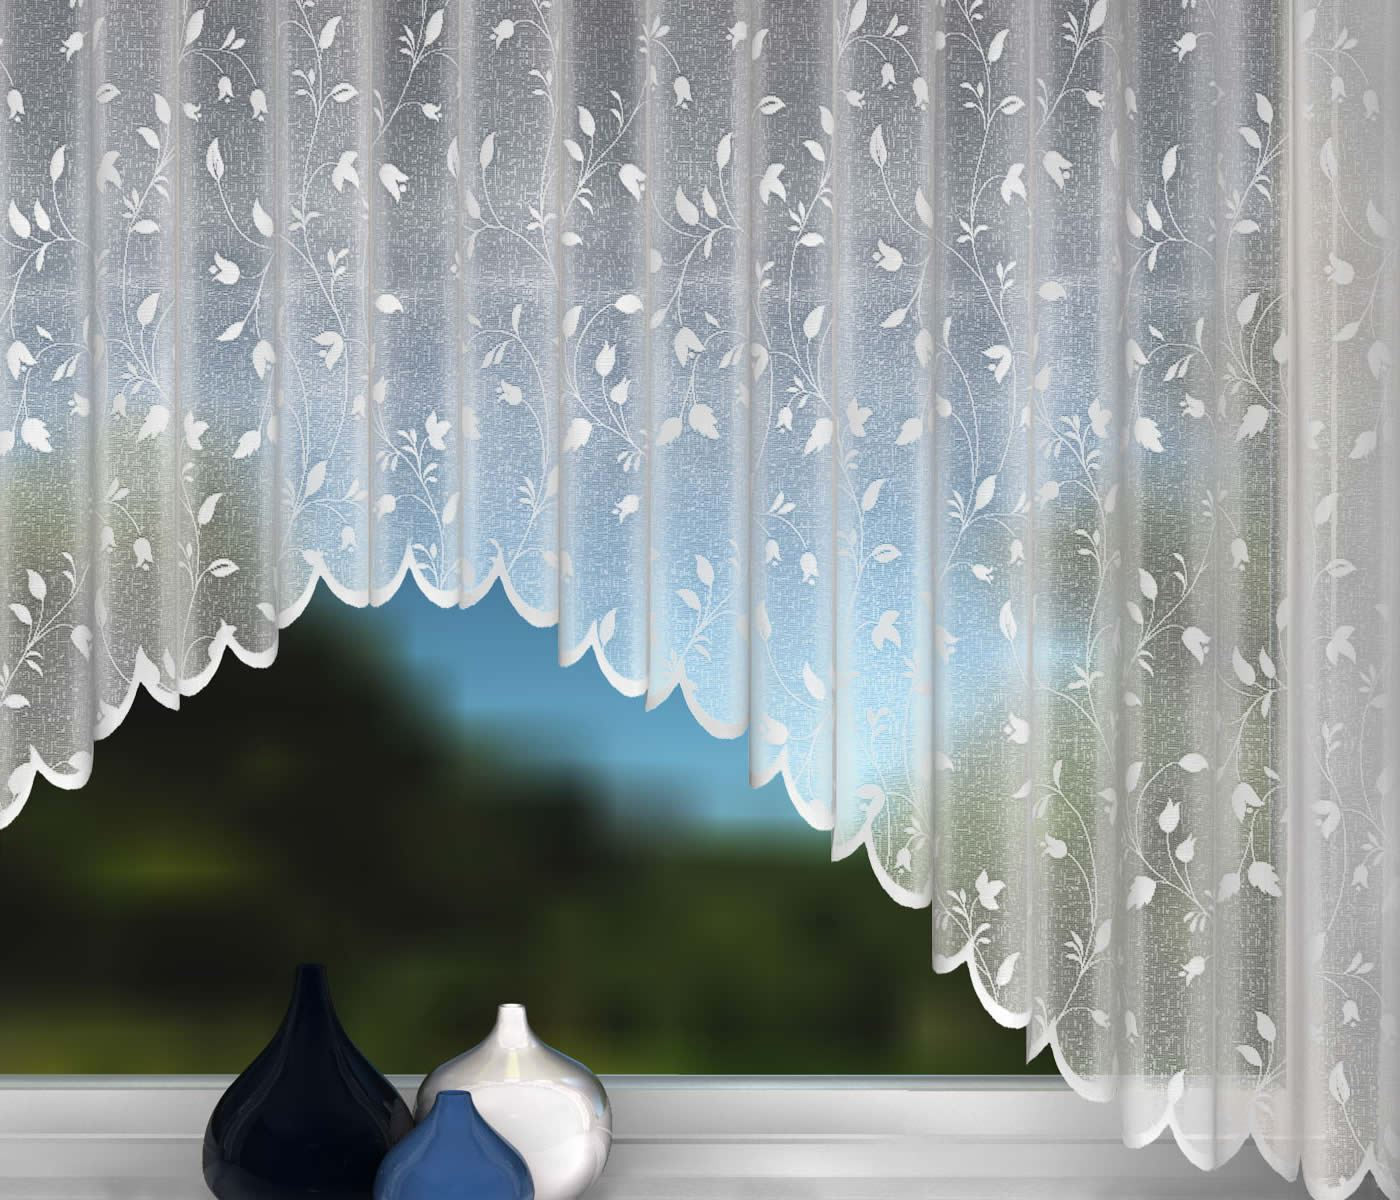 Net curtain jardiniere white net lace curtains leaf for Window net curtain